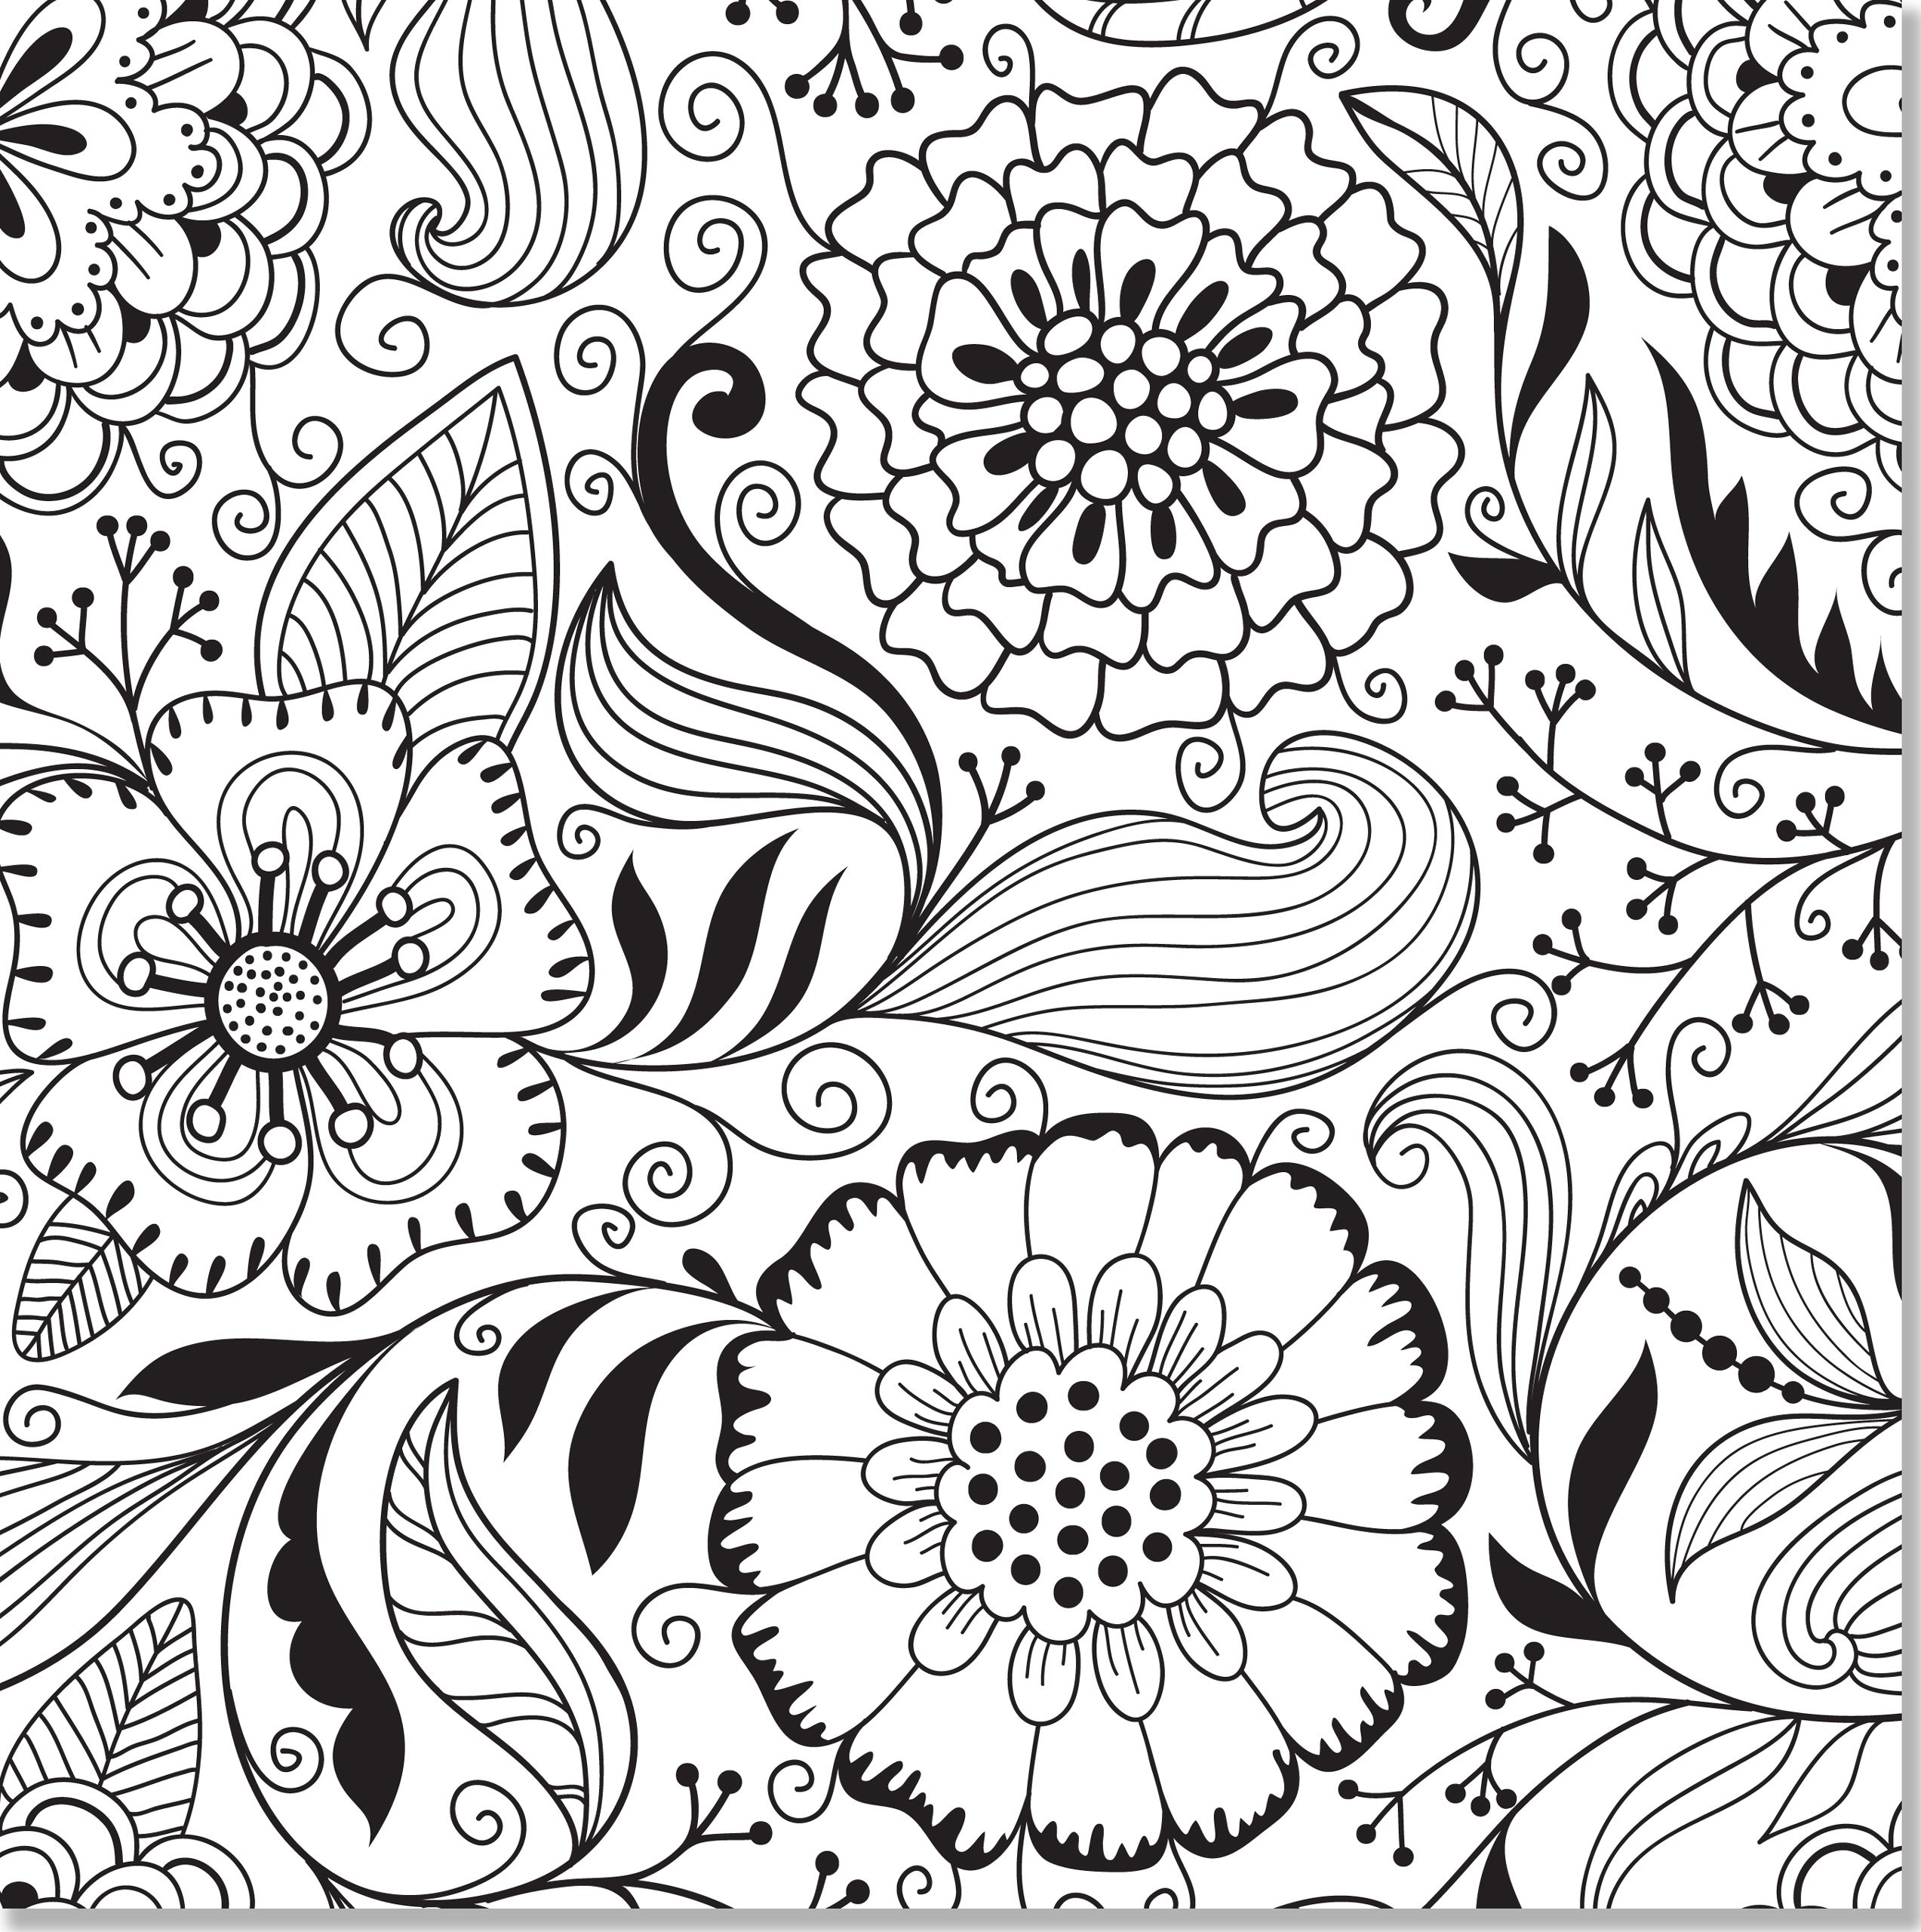 Coloring book download zip - Amazon Com Floral Designs Adult Coloring Book 31 Stress Relieving Designs Studio 9781441317452 Peter Pauper Press Books